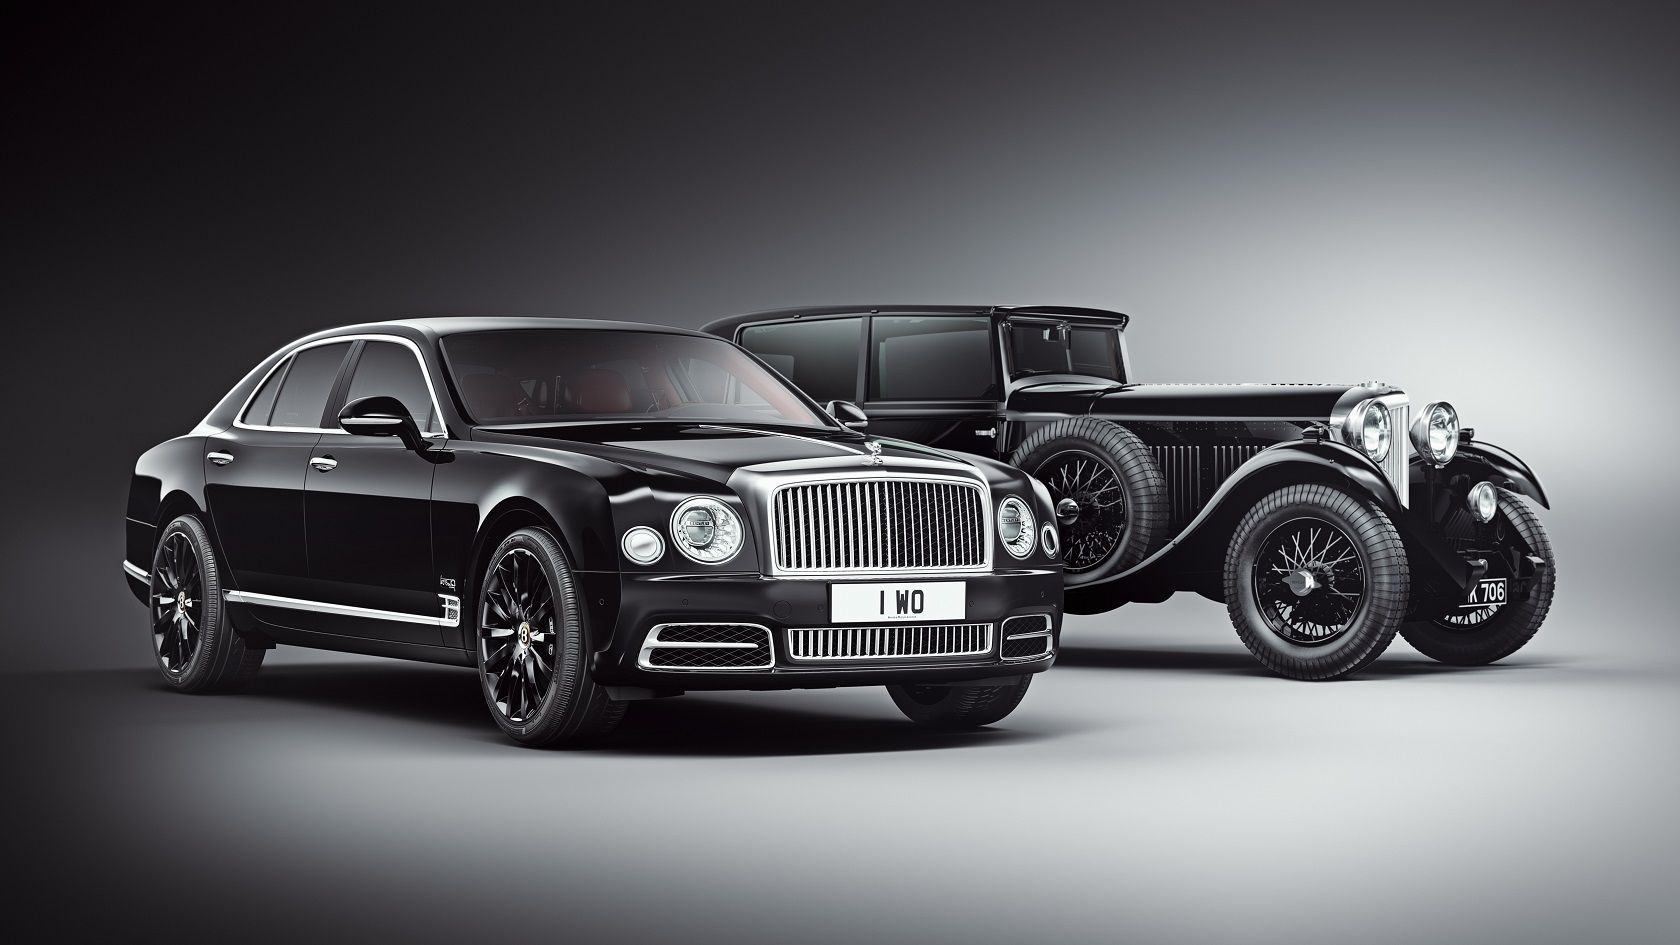 HERO Mulsanne WO Edition and 8-Litre